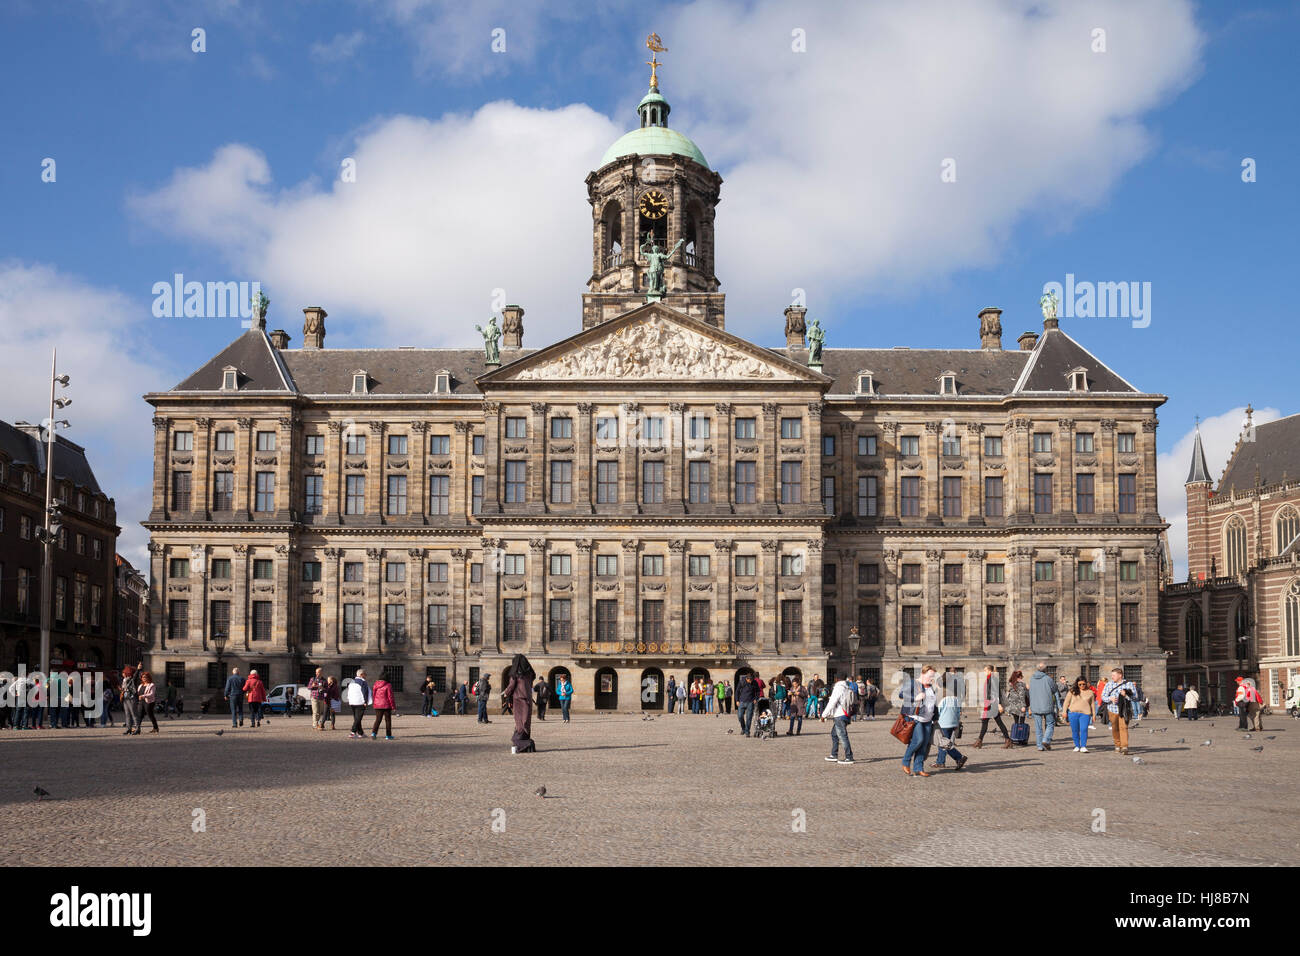 Royal palace paleis amsterdam holland the netherlands stock royal palace paleis amsterdam holland the netherlands publicscrutiny Choice Image